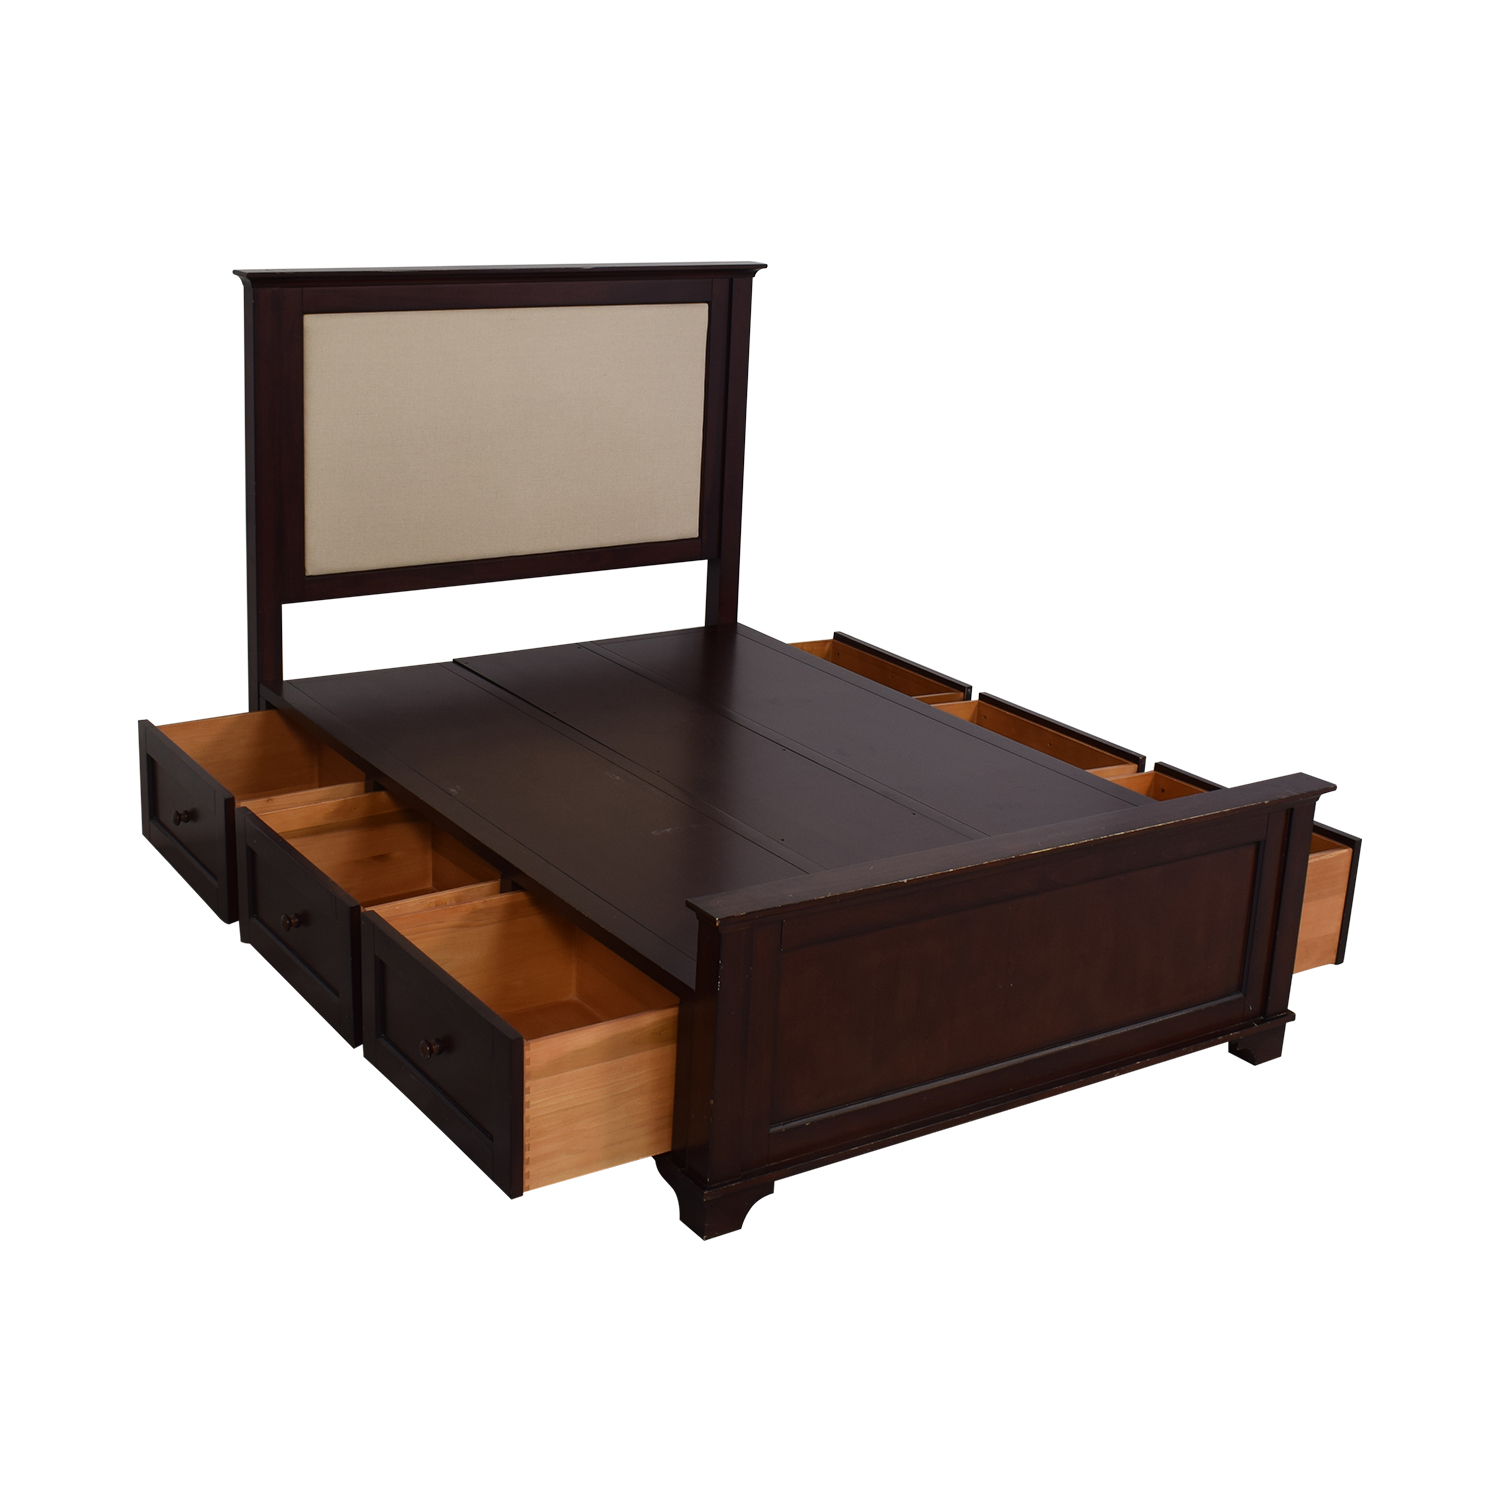 Pottery Barn Cynthia Storage Full Bed / Bed Frames